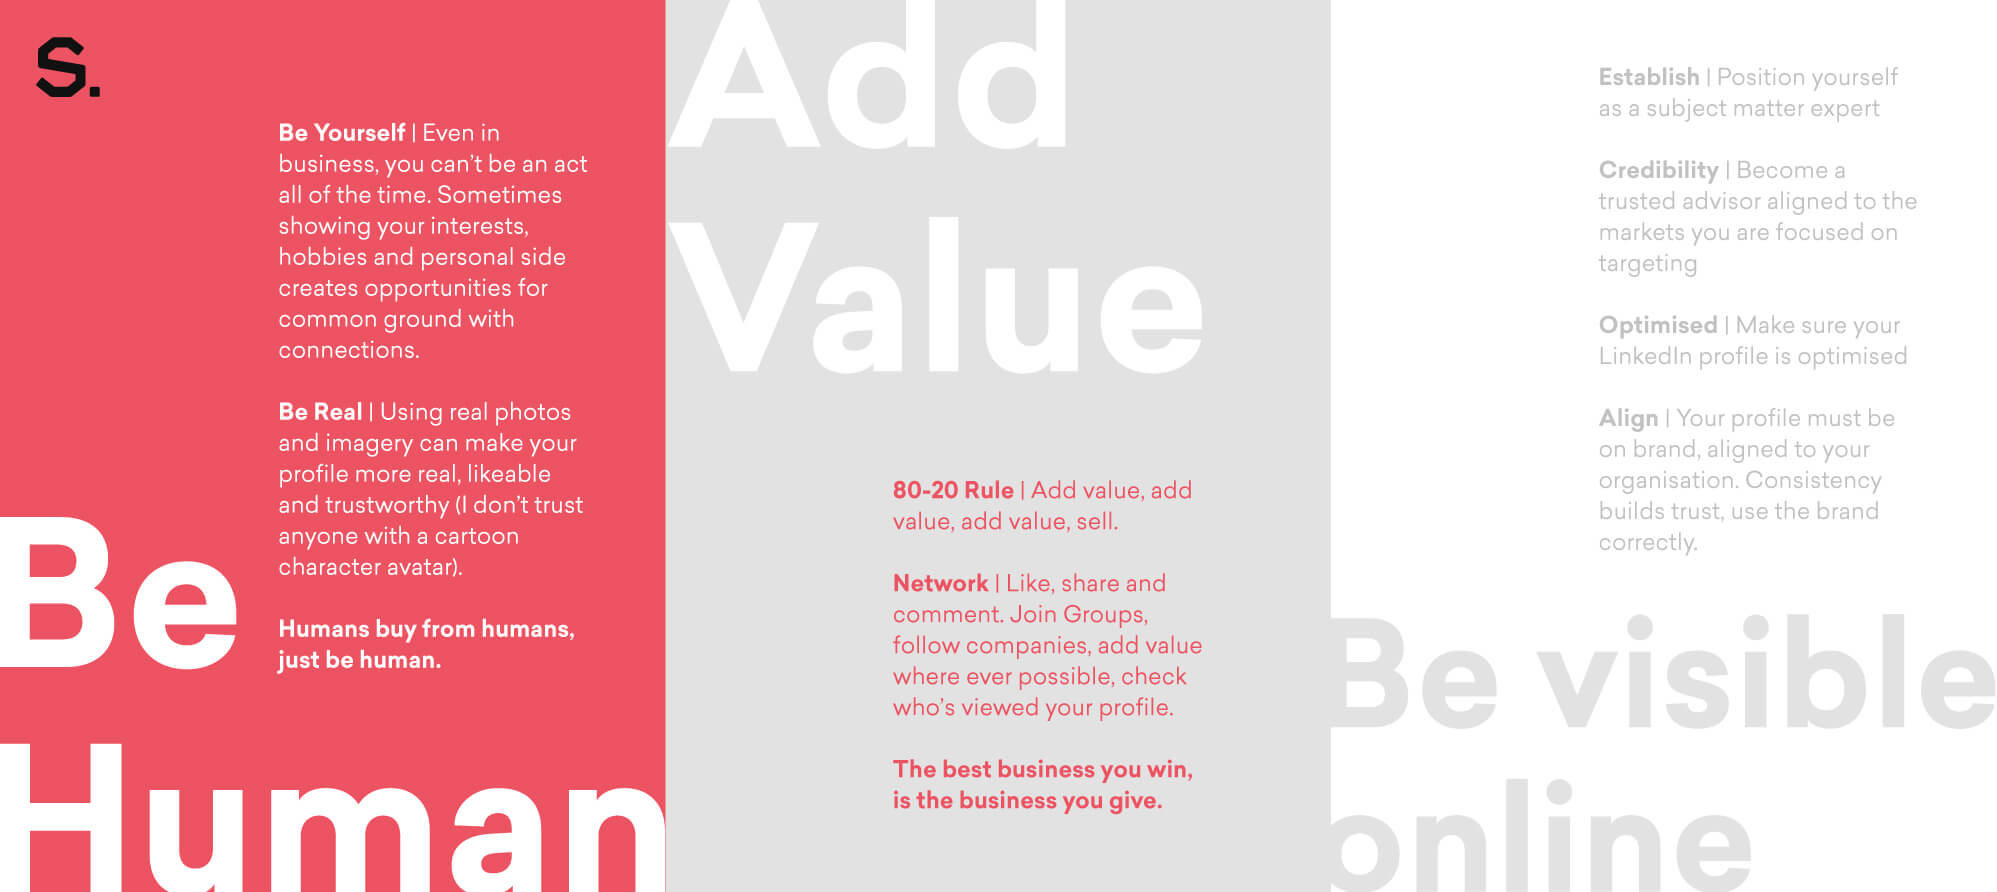 An image of 3 core values for a successful business